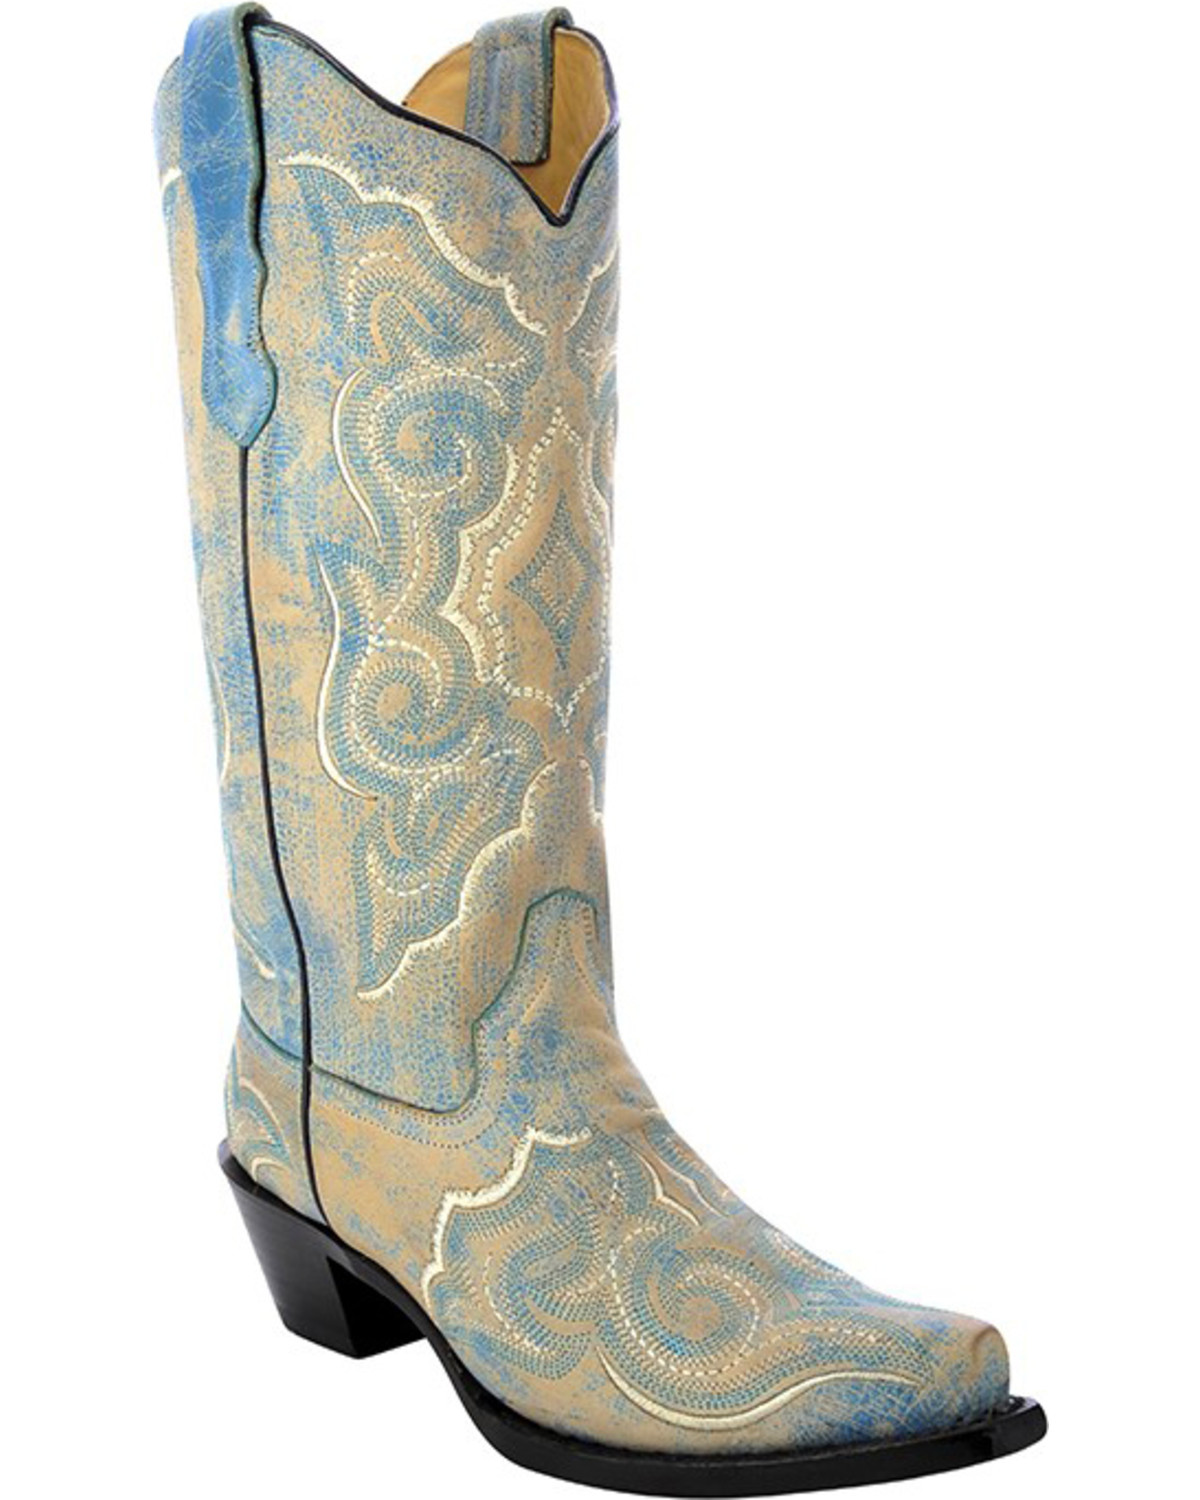 239d6a8e2c7 Corral Women's Distressed Leather Embroidered Cowgirl Boots - Snip Toe